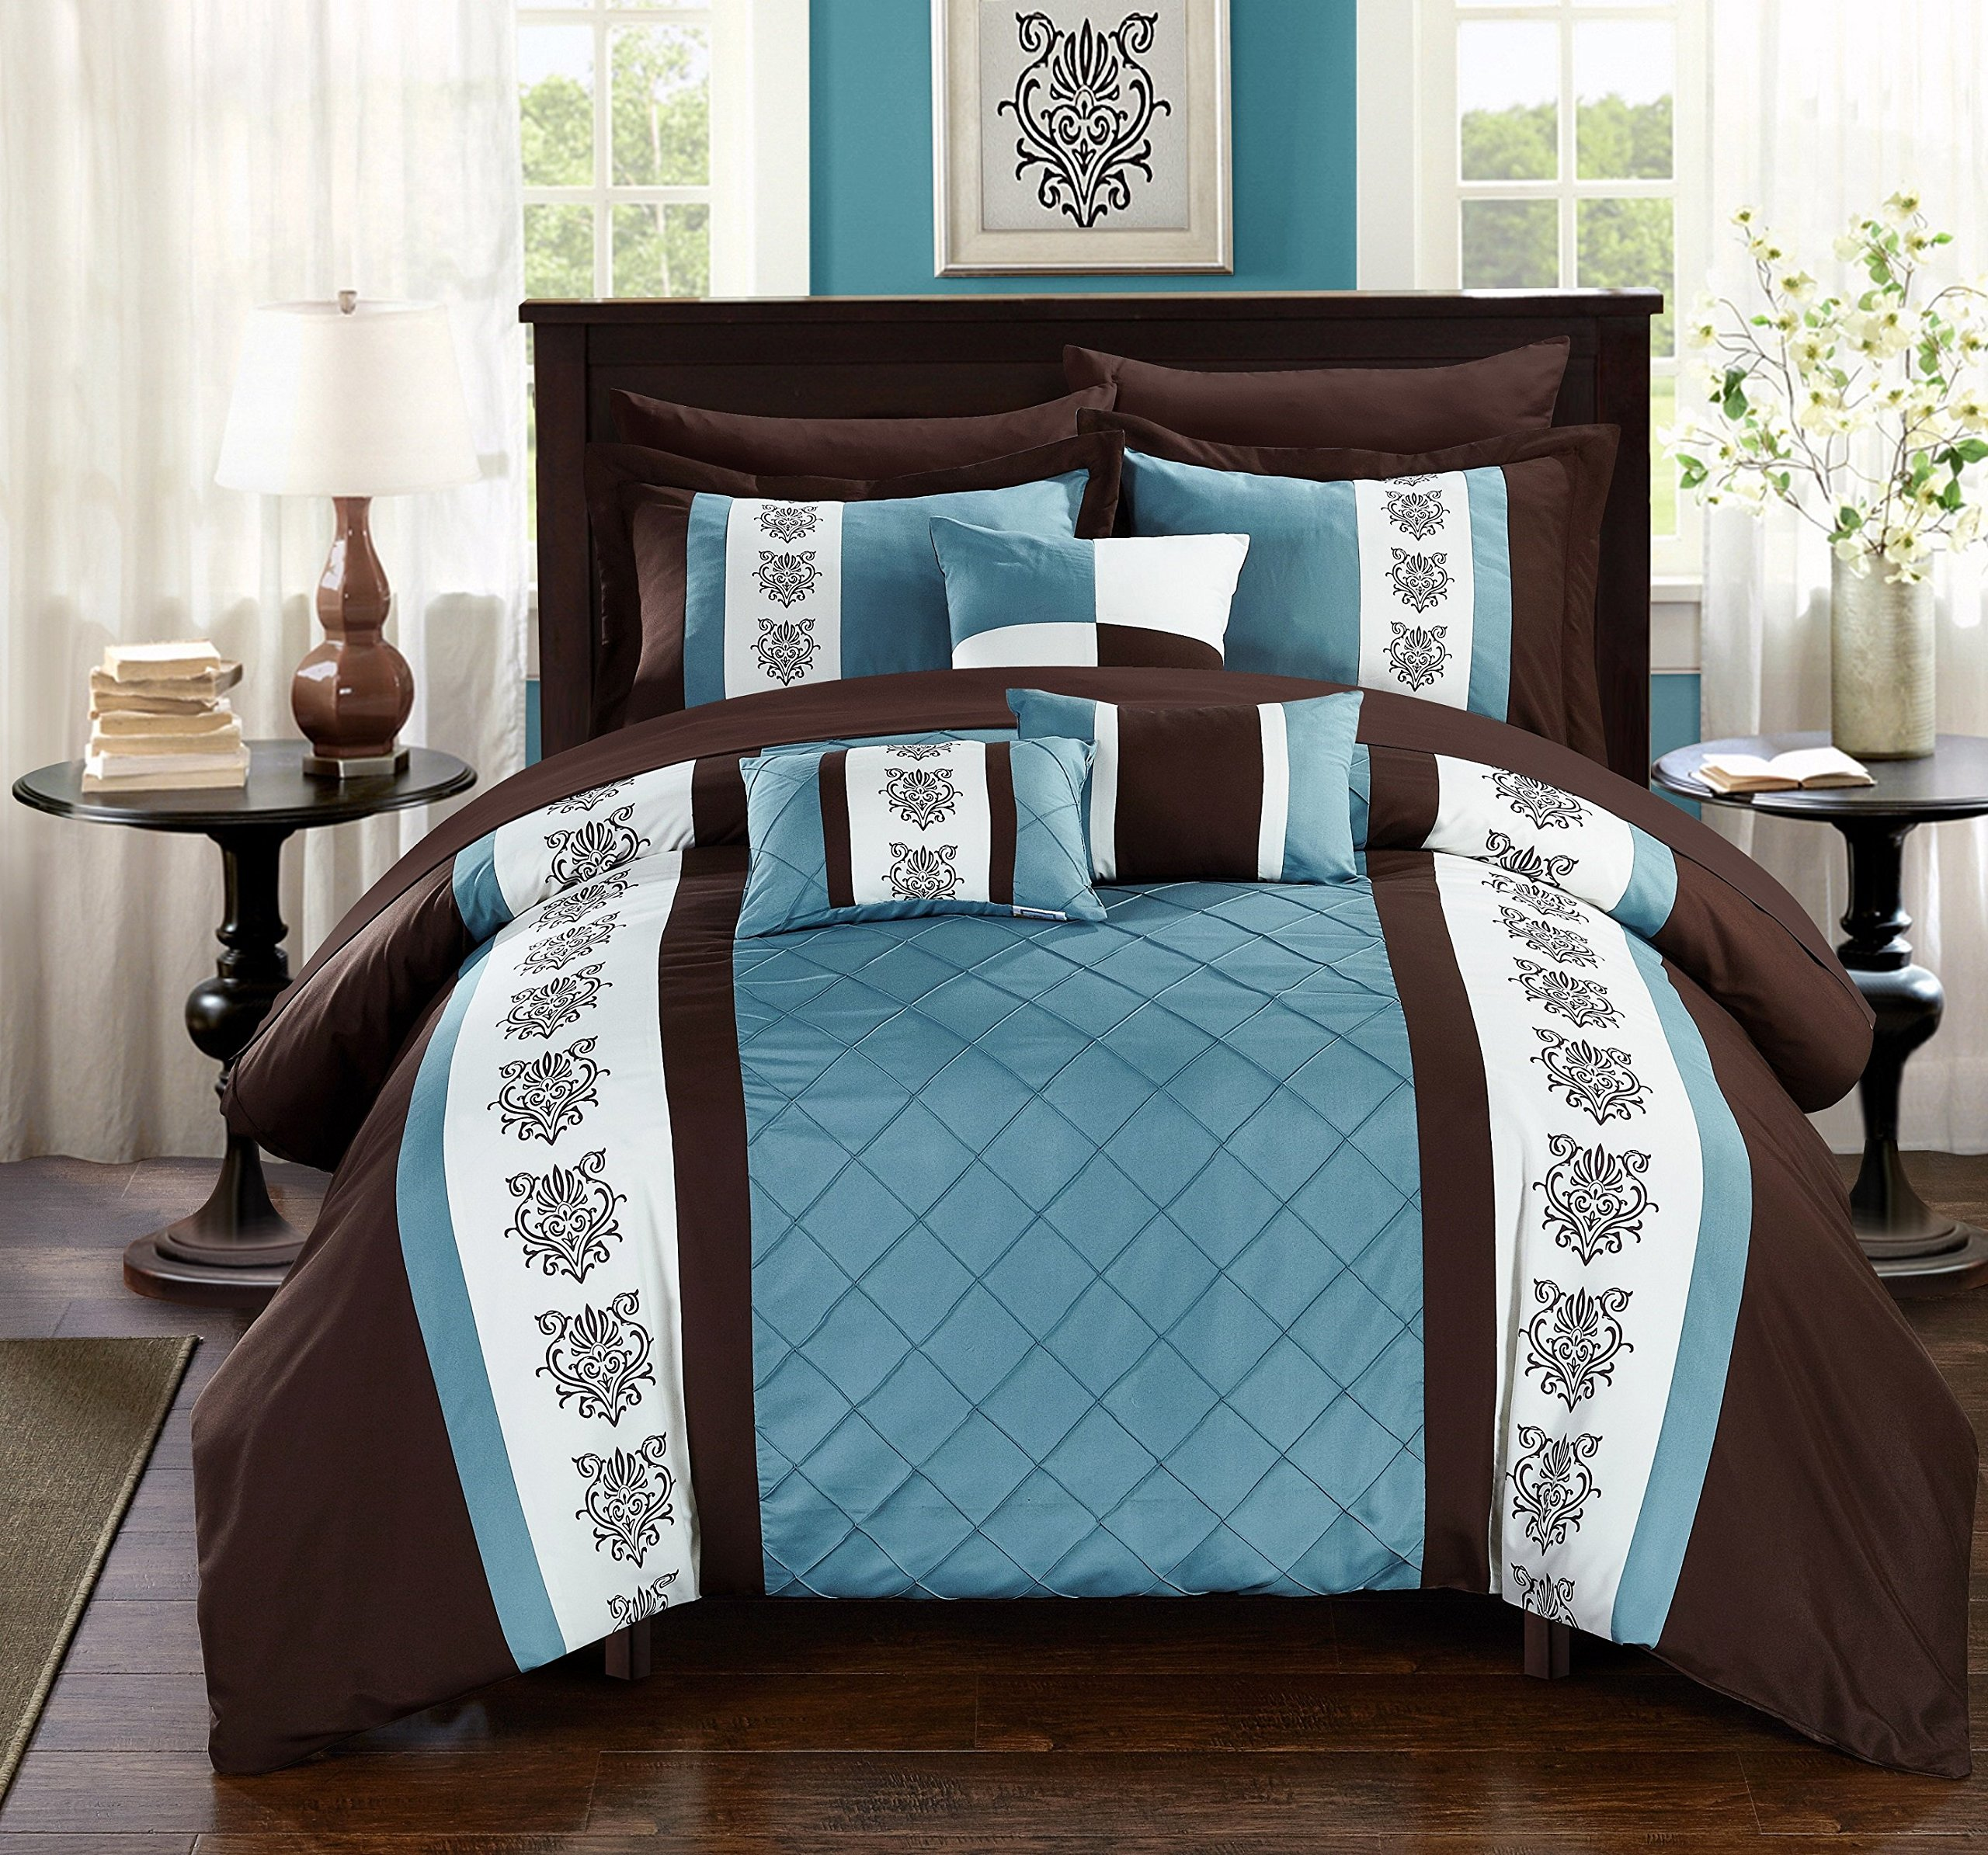 Chic home clayton 10 piece comforter set pintuck pieced block embroidery bed in a bag with